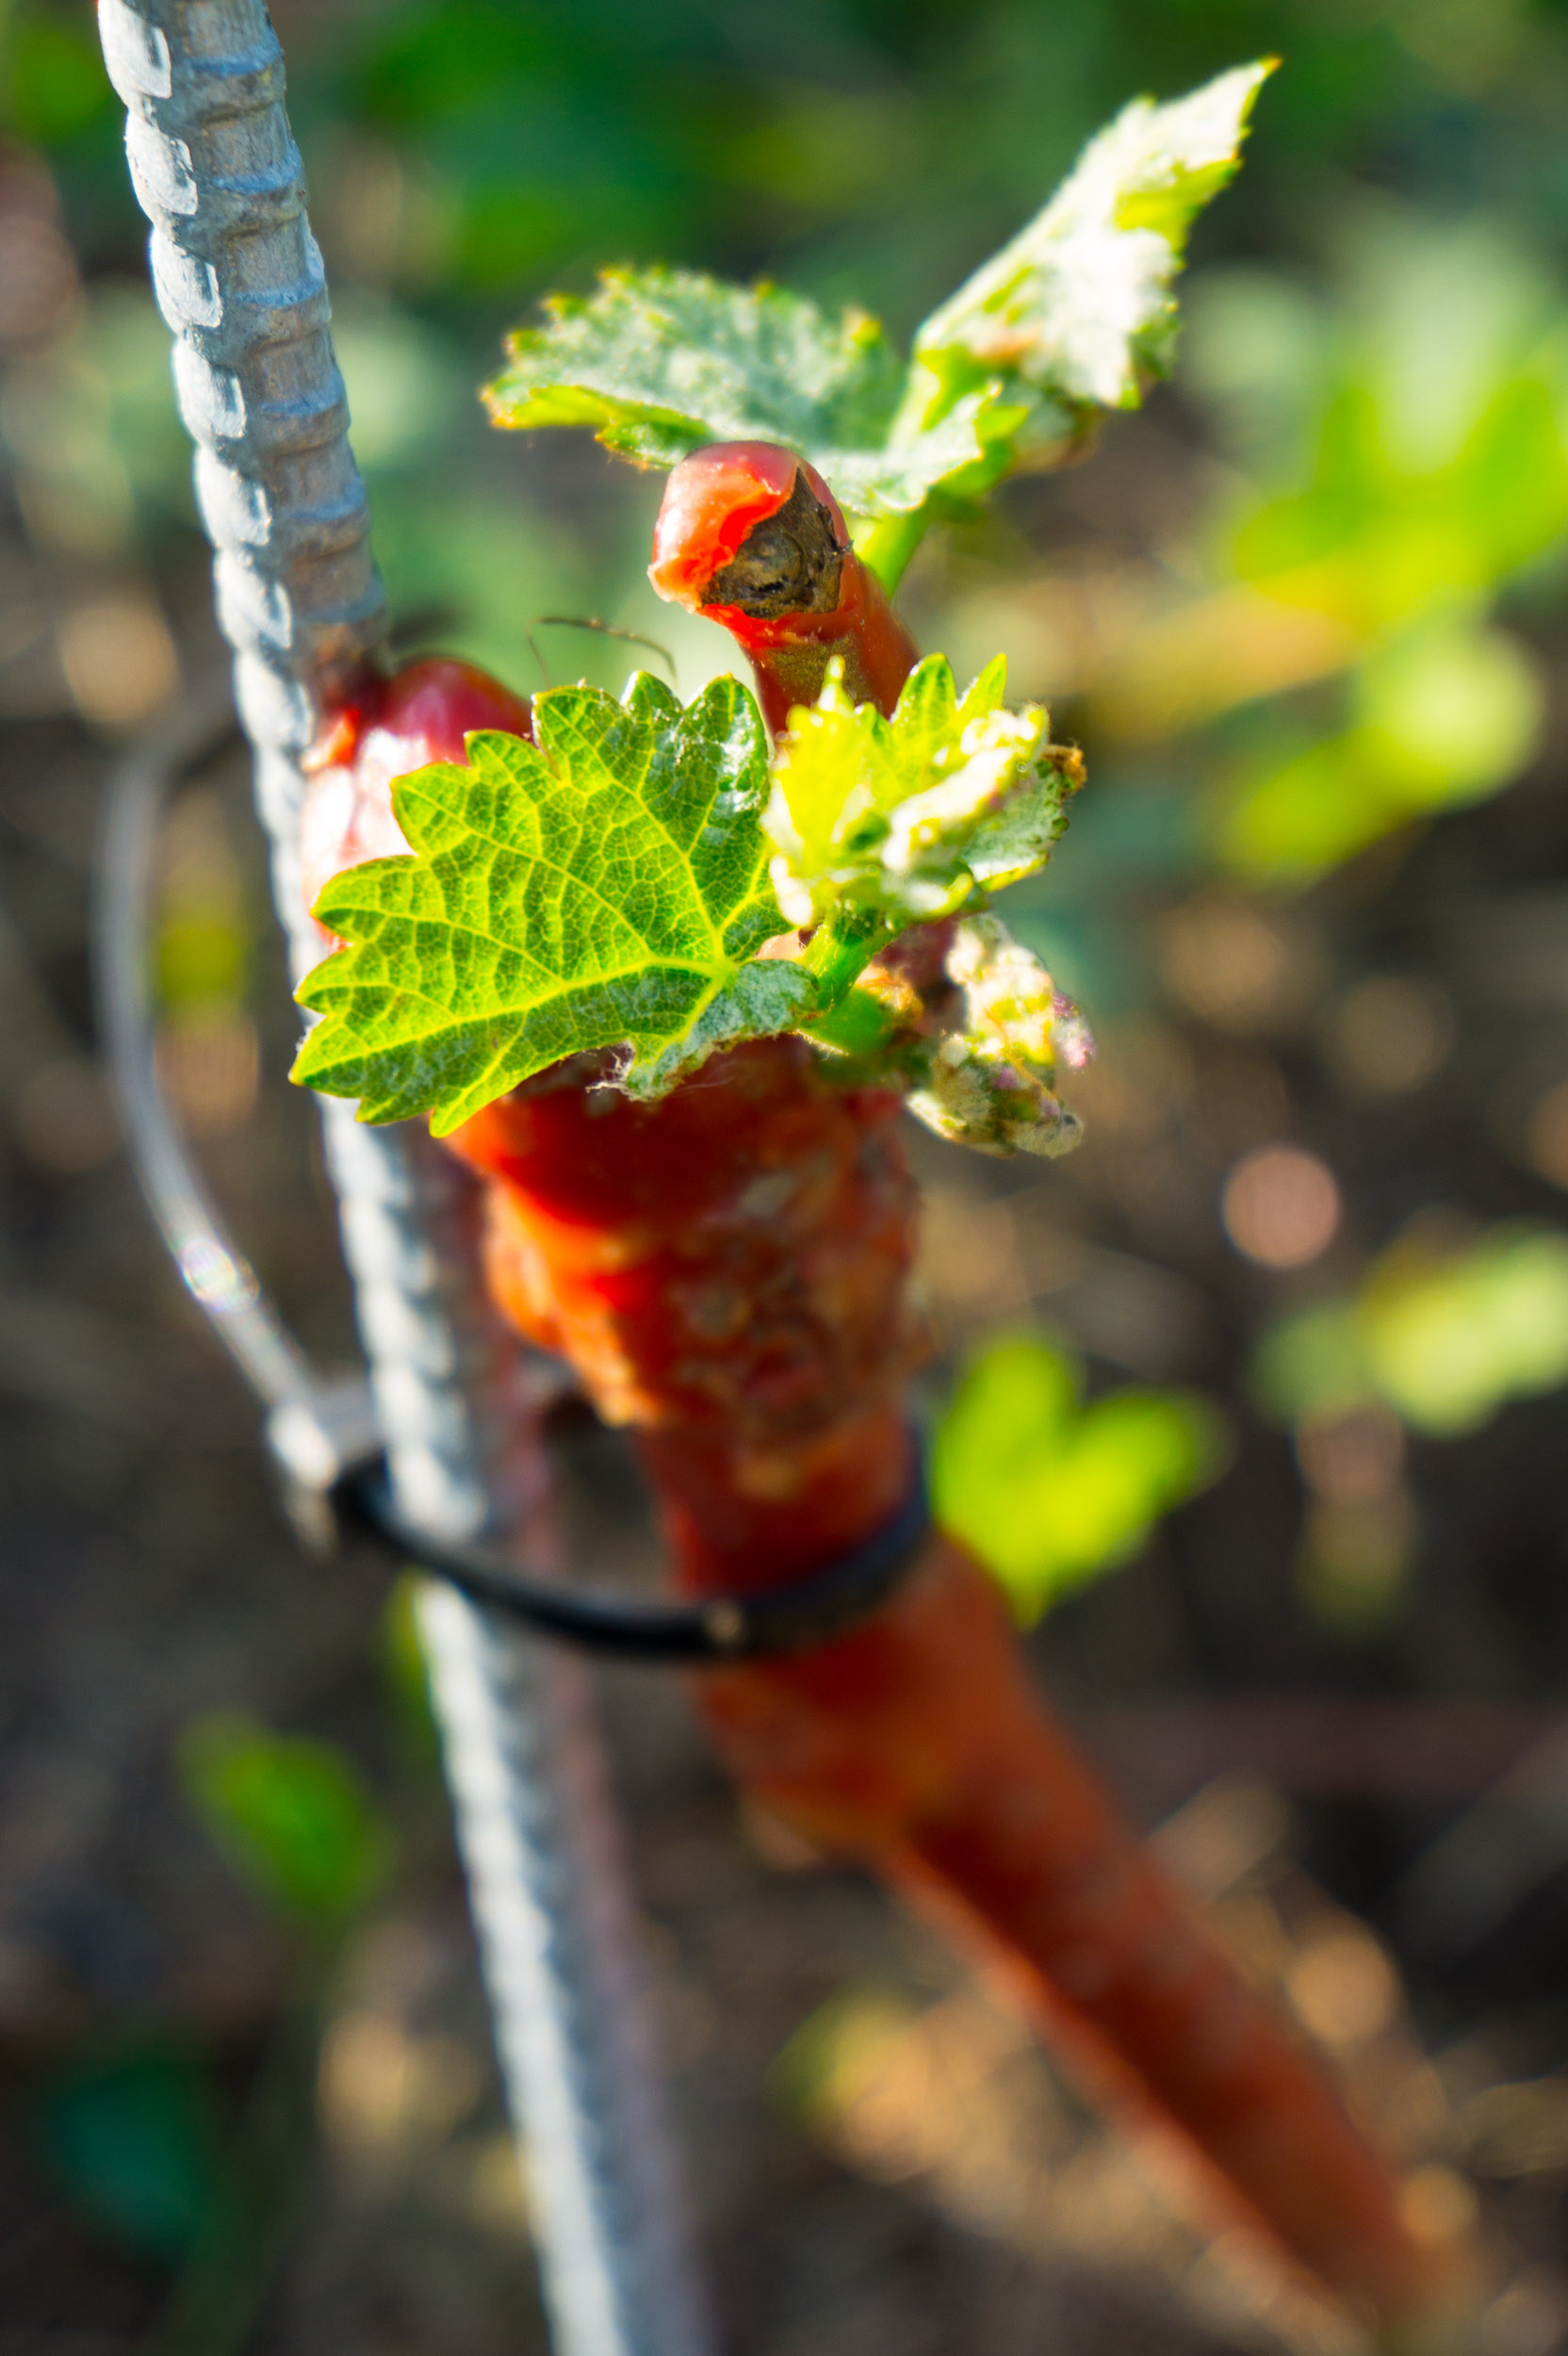 Meopham-Valley-Vineyard-Grapes-Vines-Buds-1